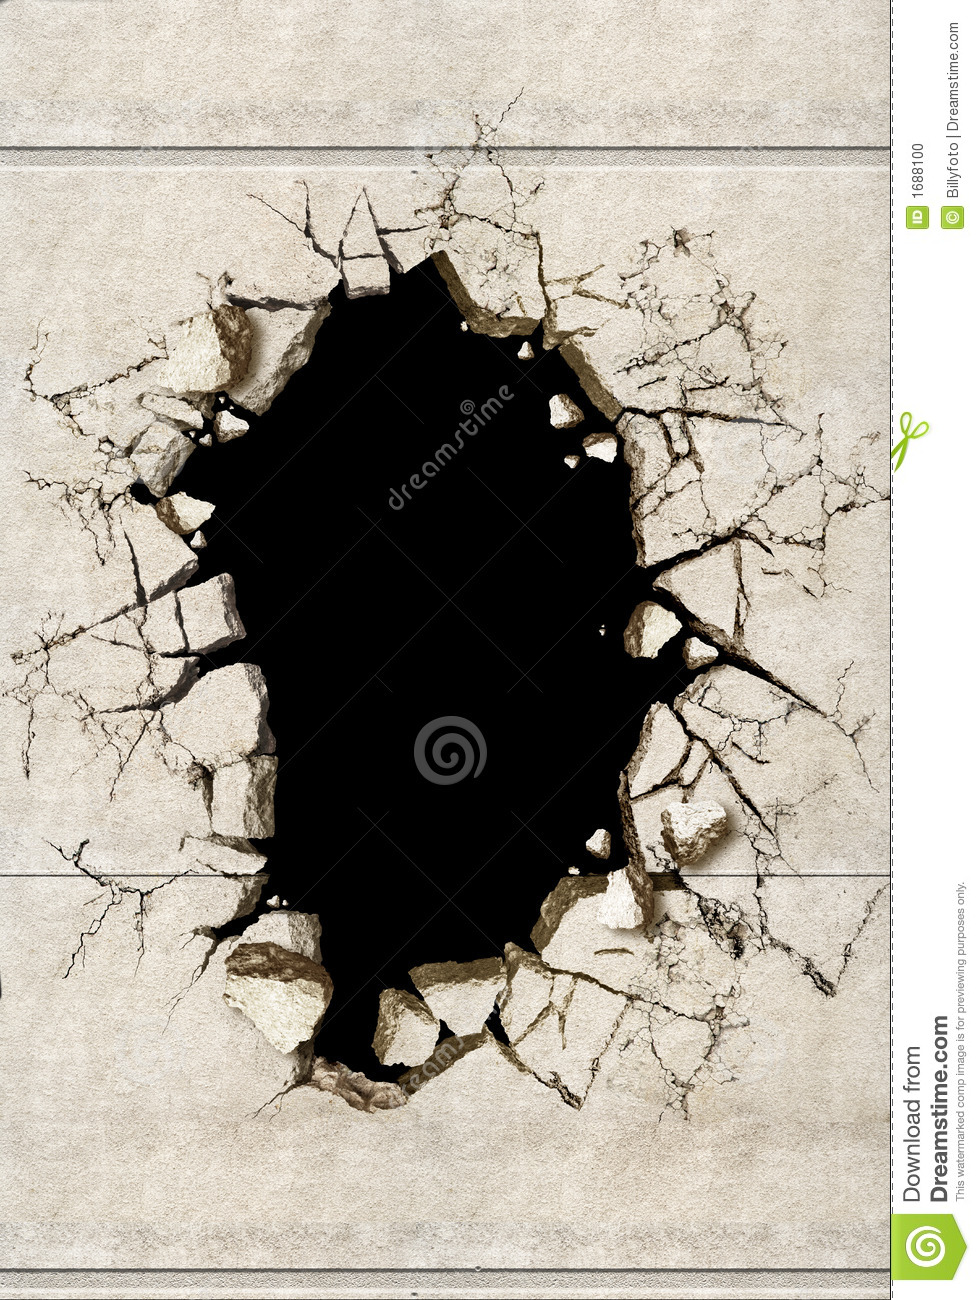 A Hole In A Mortar Wall Stock Photo.